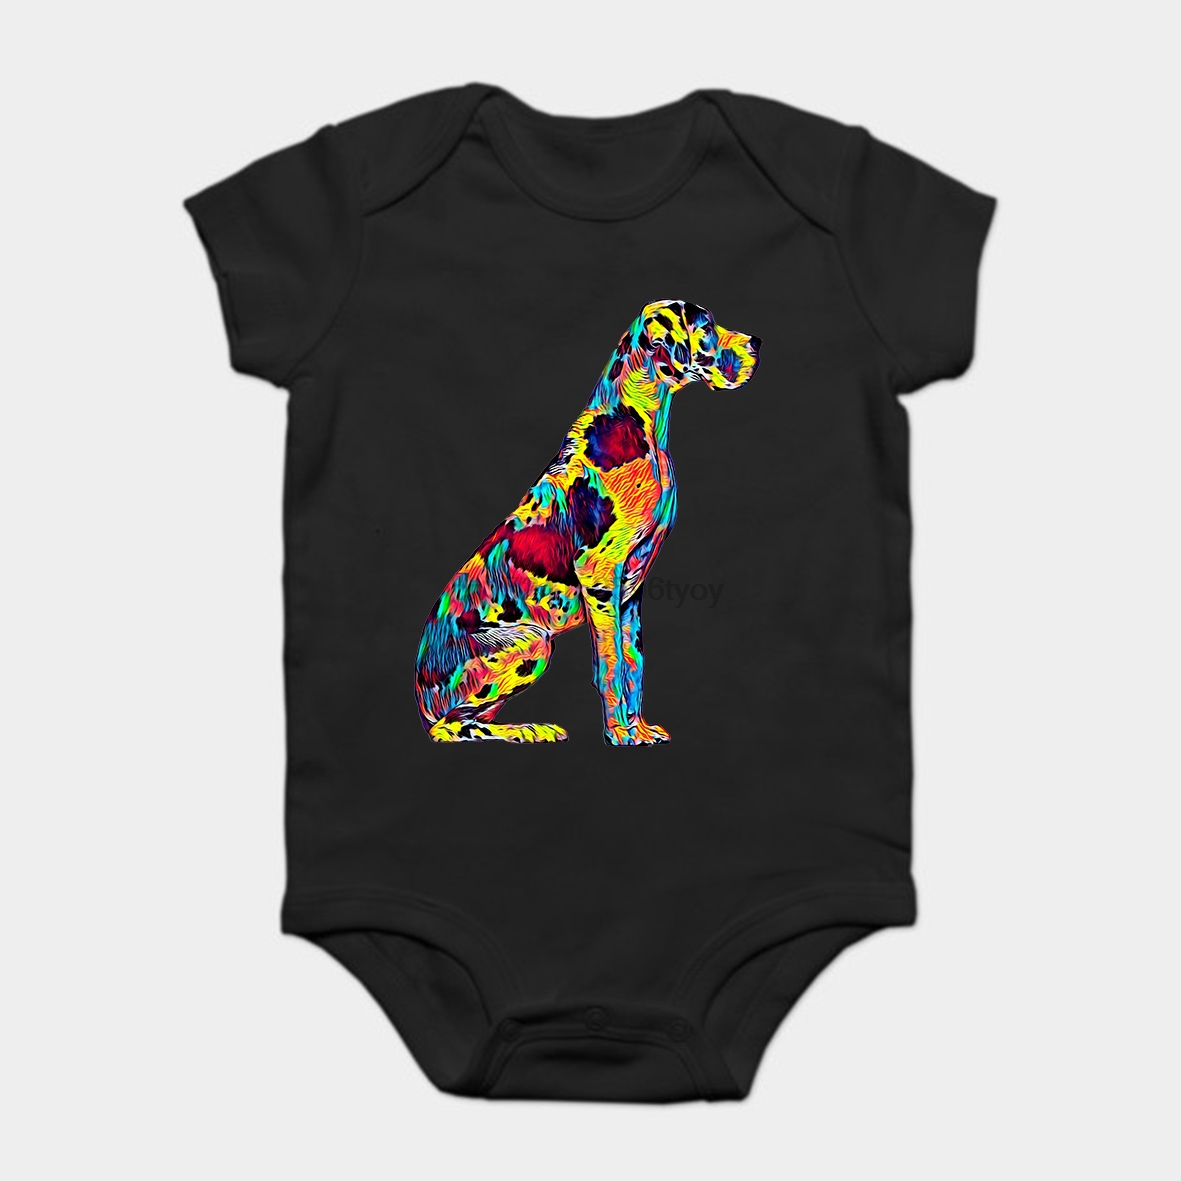 933151c5d Baby Onesie Baby Bodysuits kid t shirt Funny novelty Great Dane Big Dog Pet Full  Body Chillin True Friend